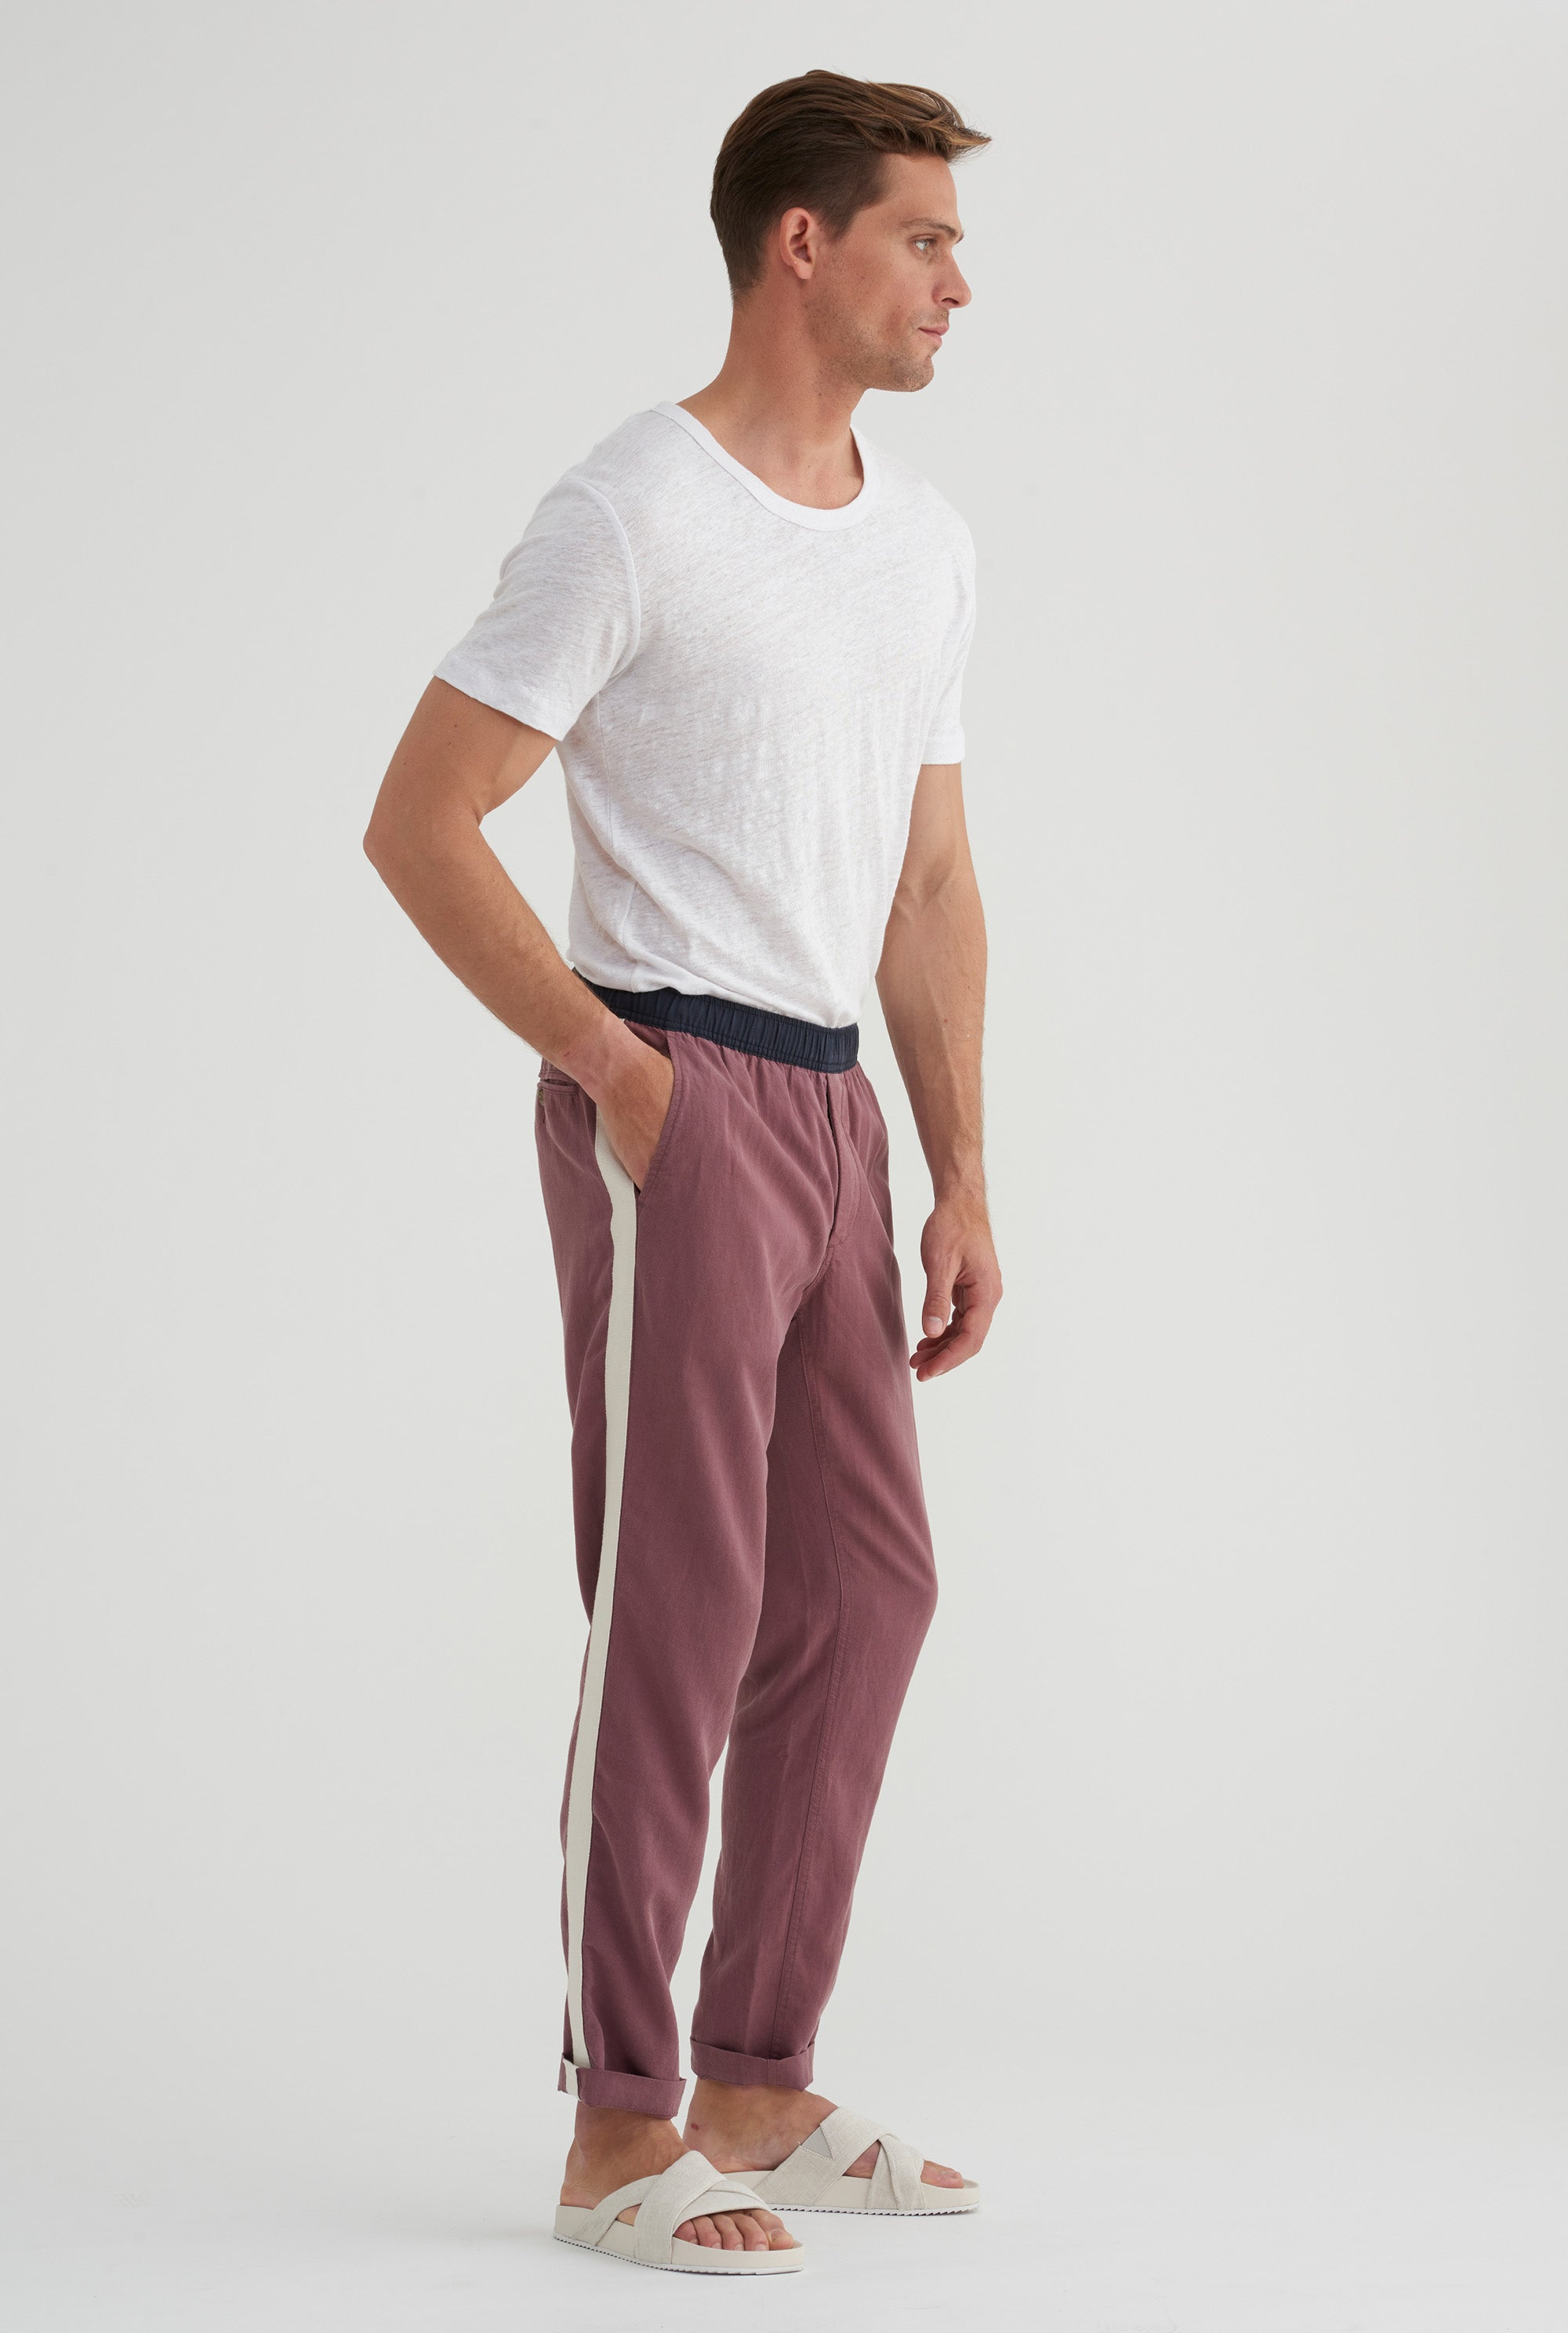 Tencel Lounge Chino - Burgundy/Navy Colour Block